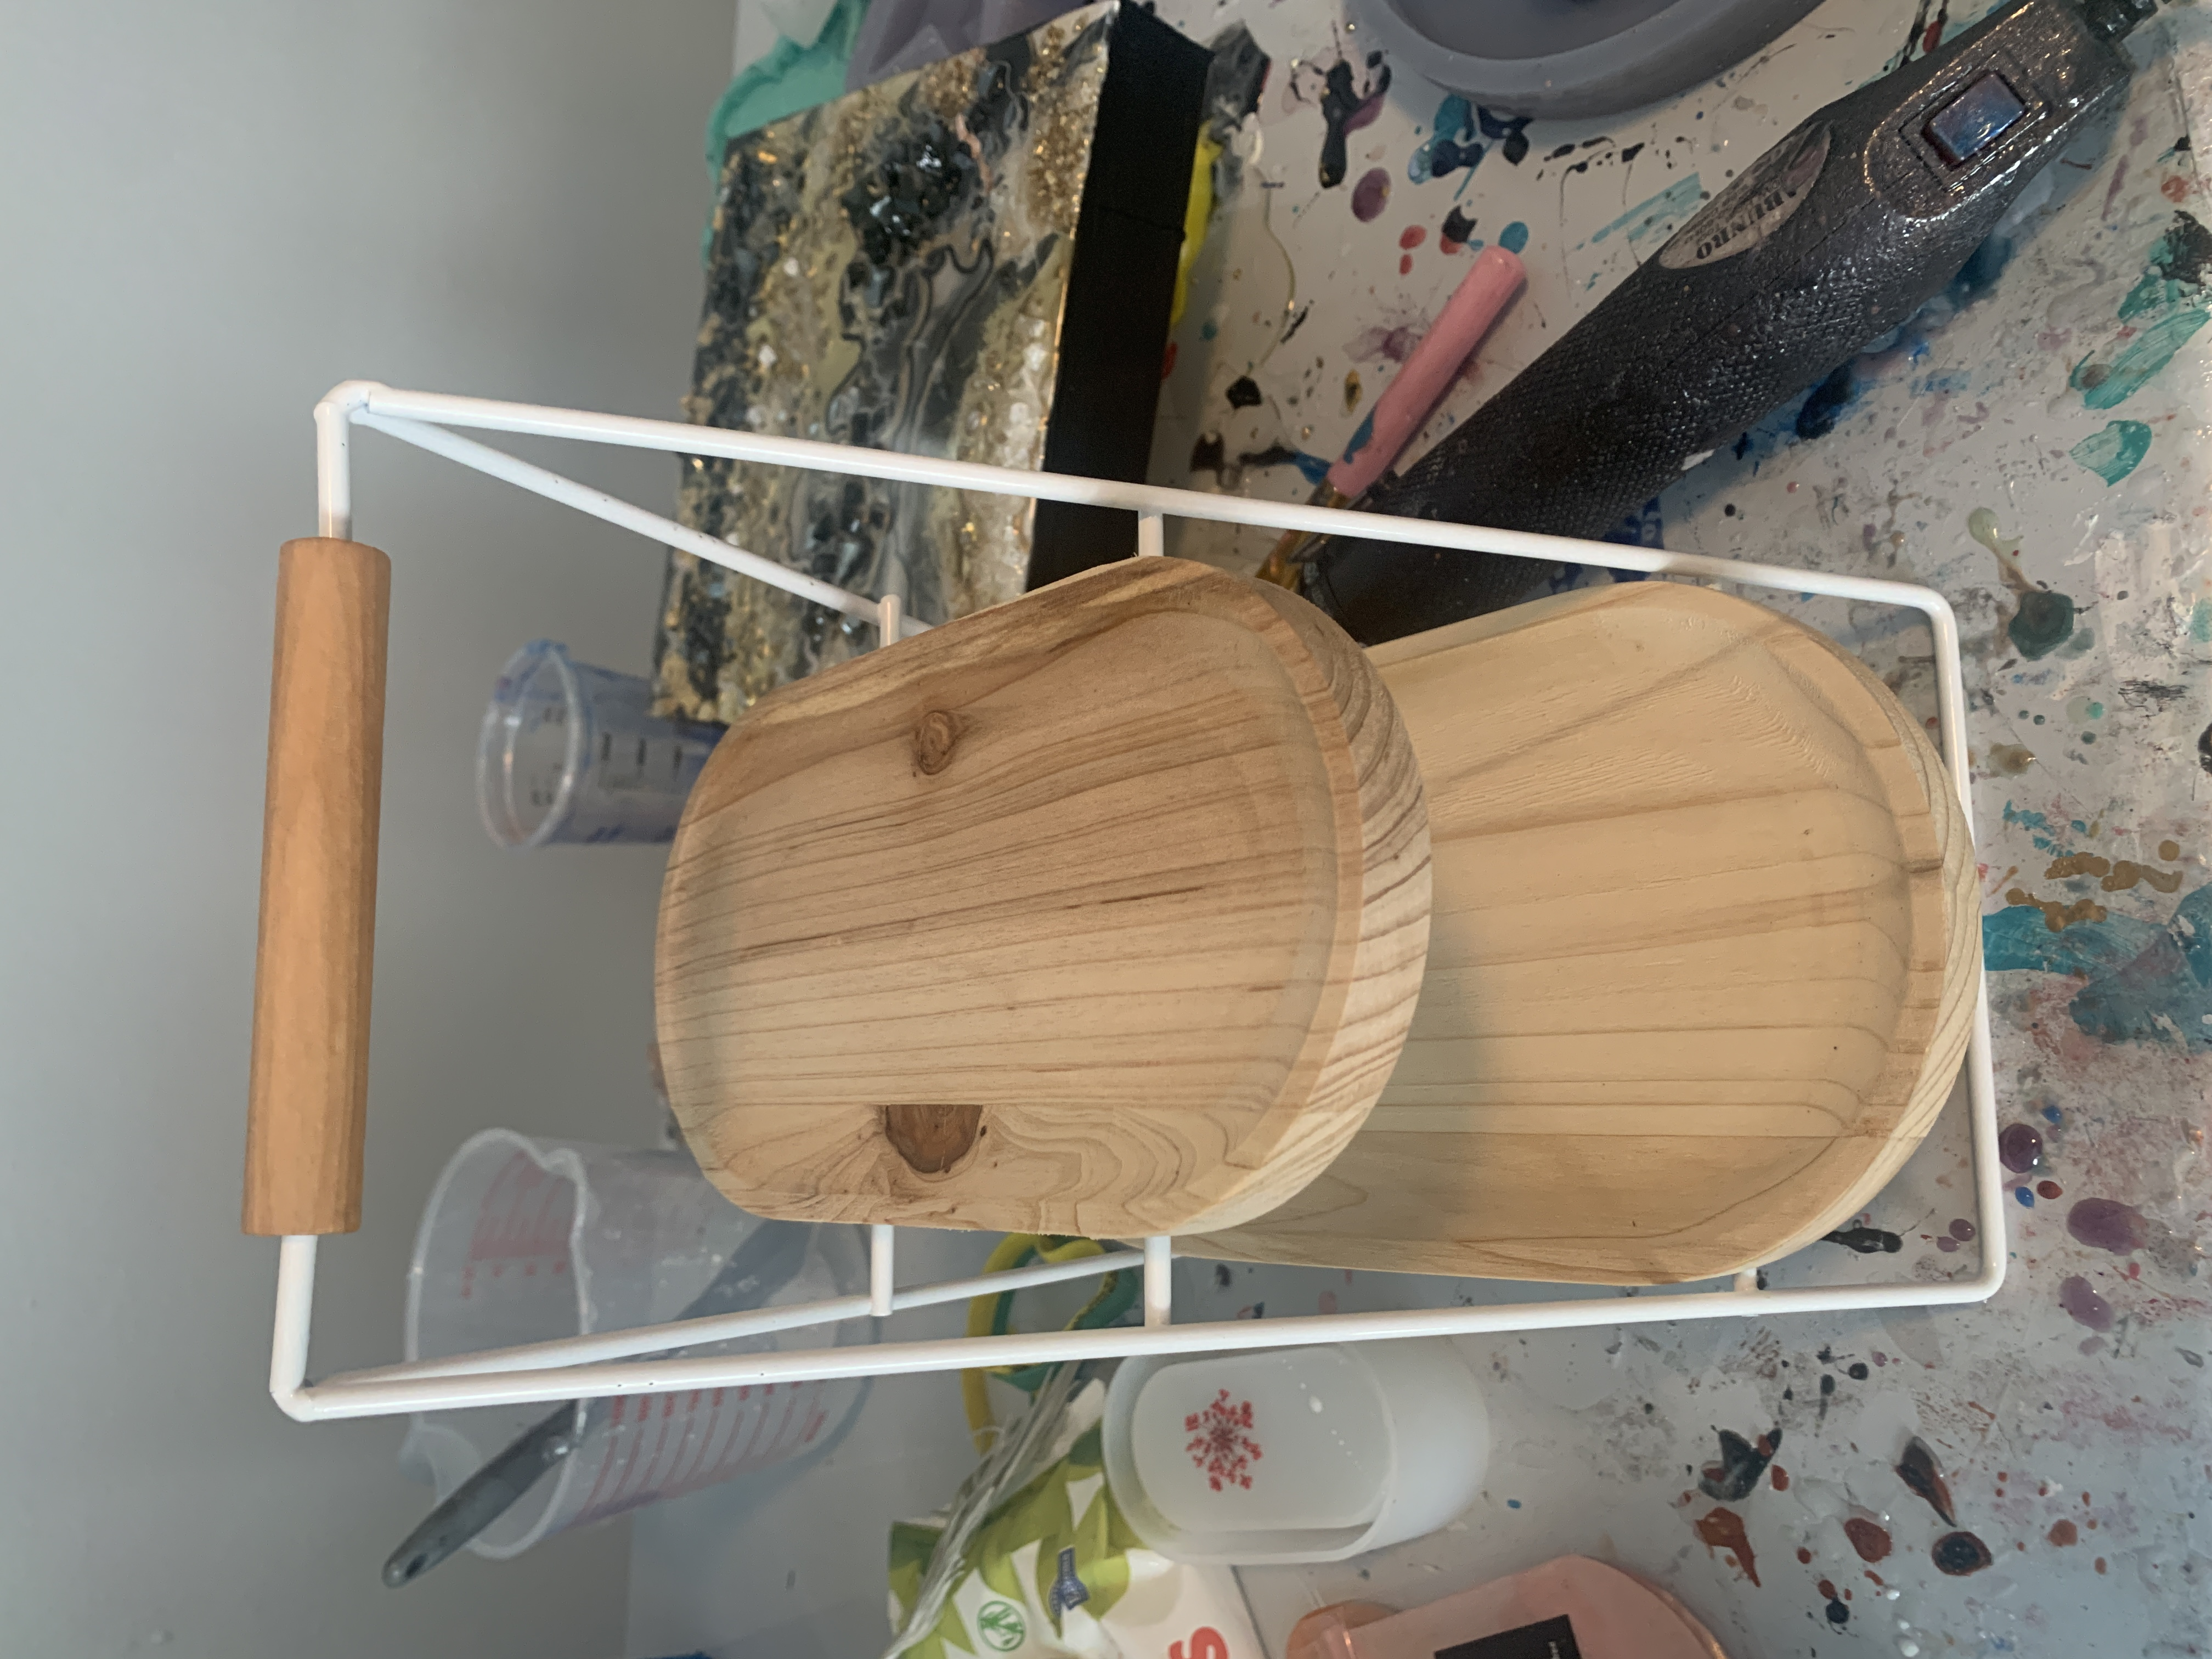 wooden two-tiered tray